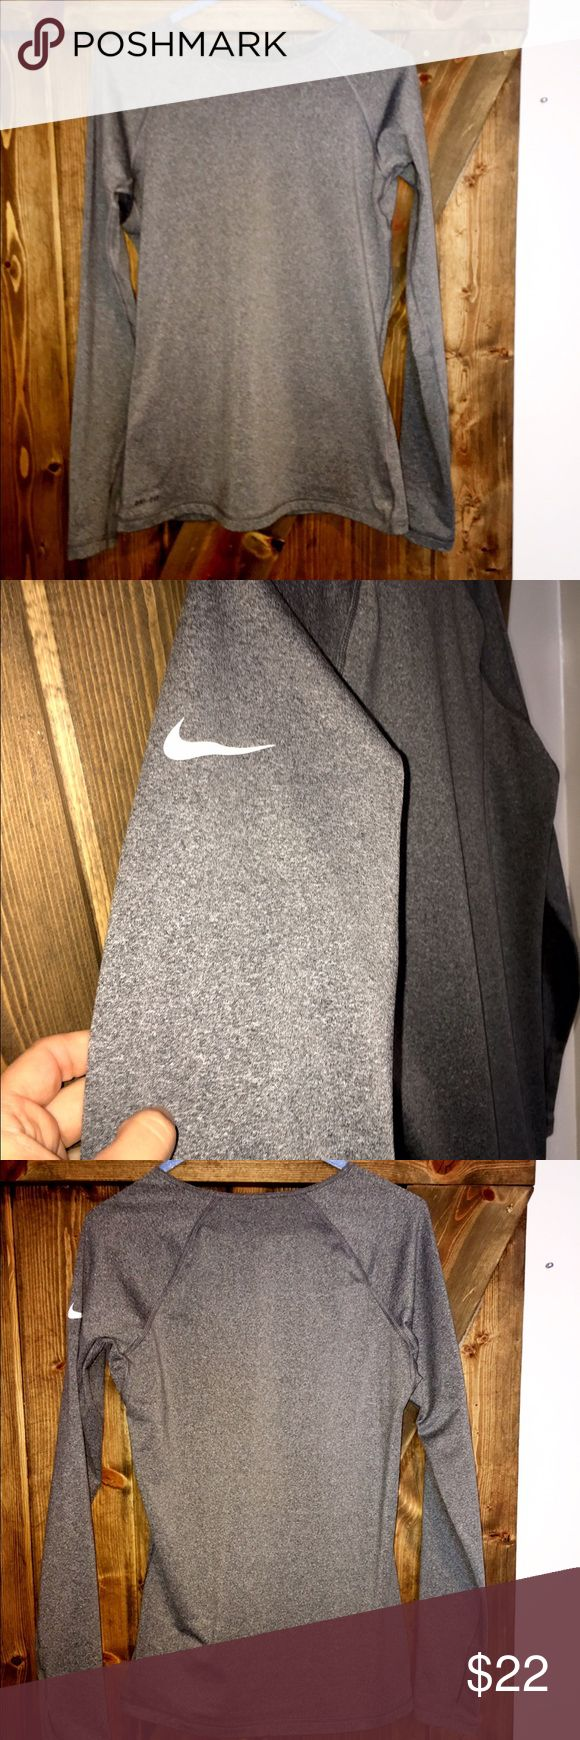 Nike Pro mild insulated long sleeve Thumb holes and soft warm Fabric on the inside. Perfect for the chilly weather! Worn twice. Nike Tops Tees - Long Sleeve